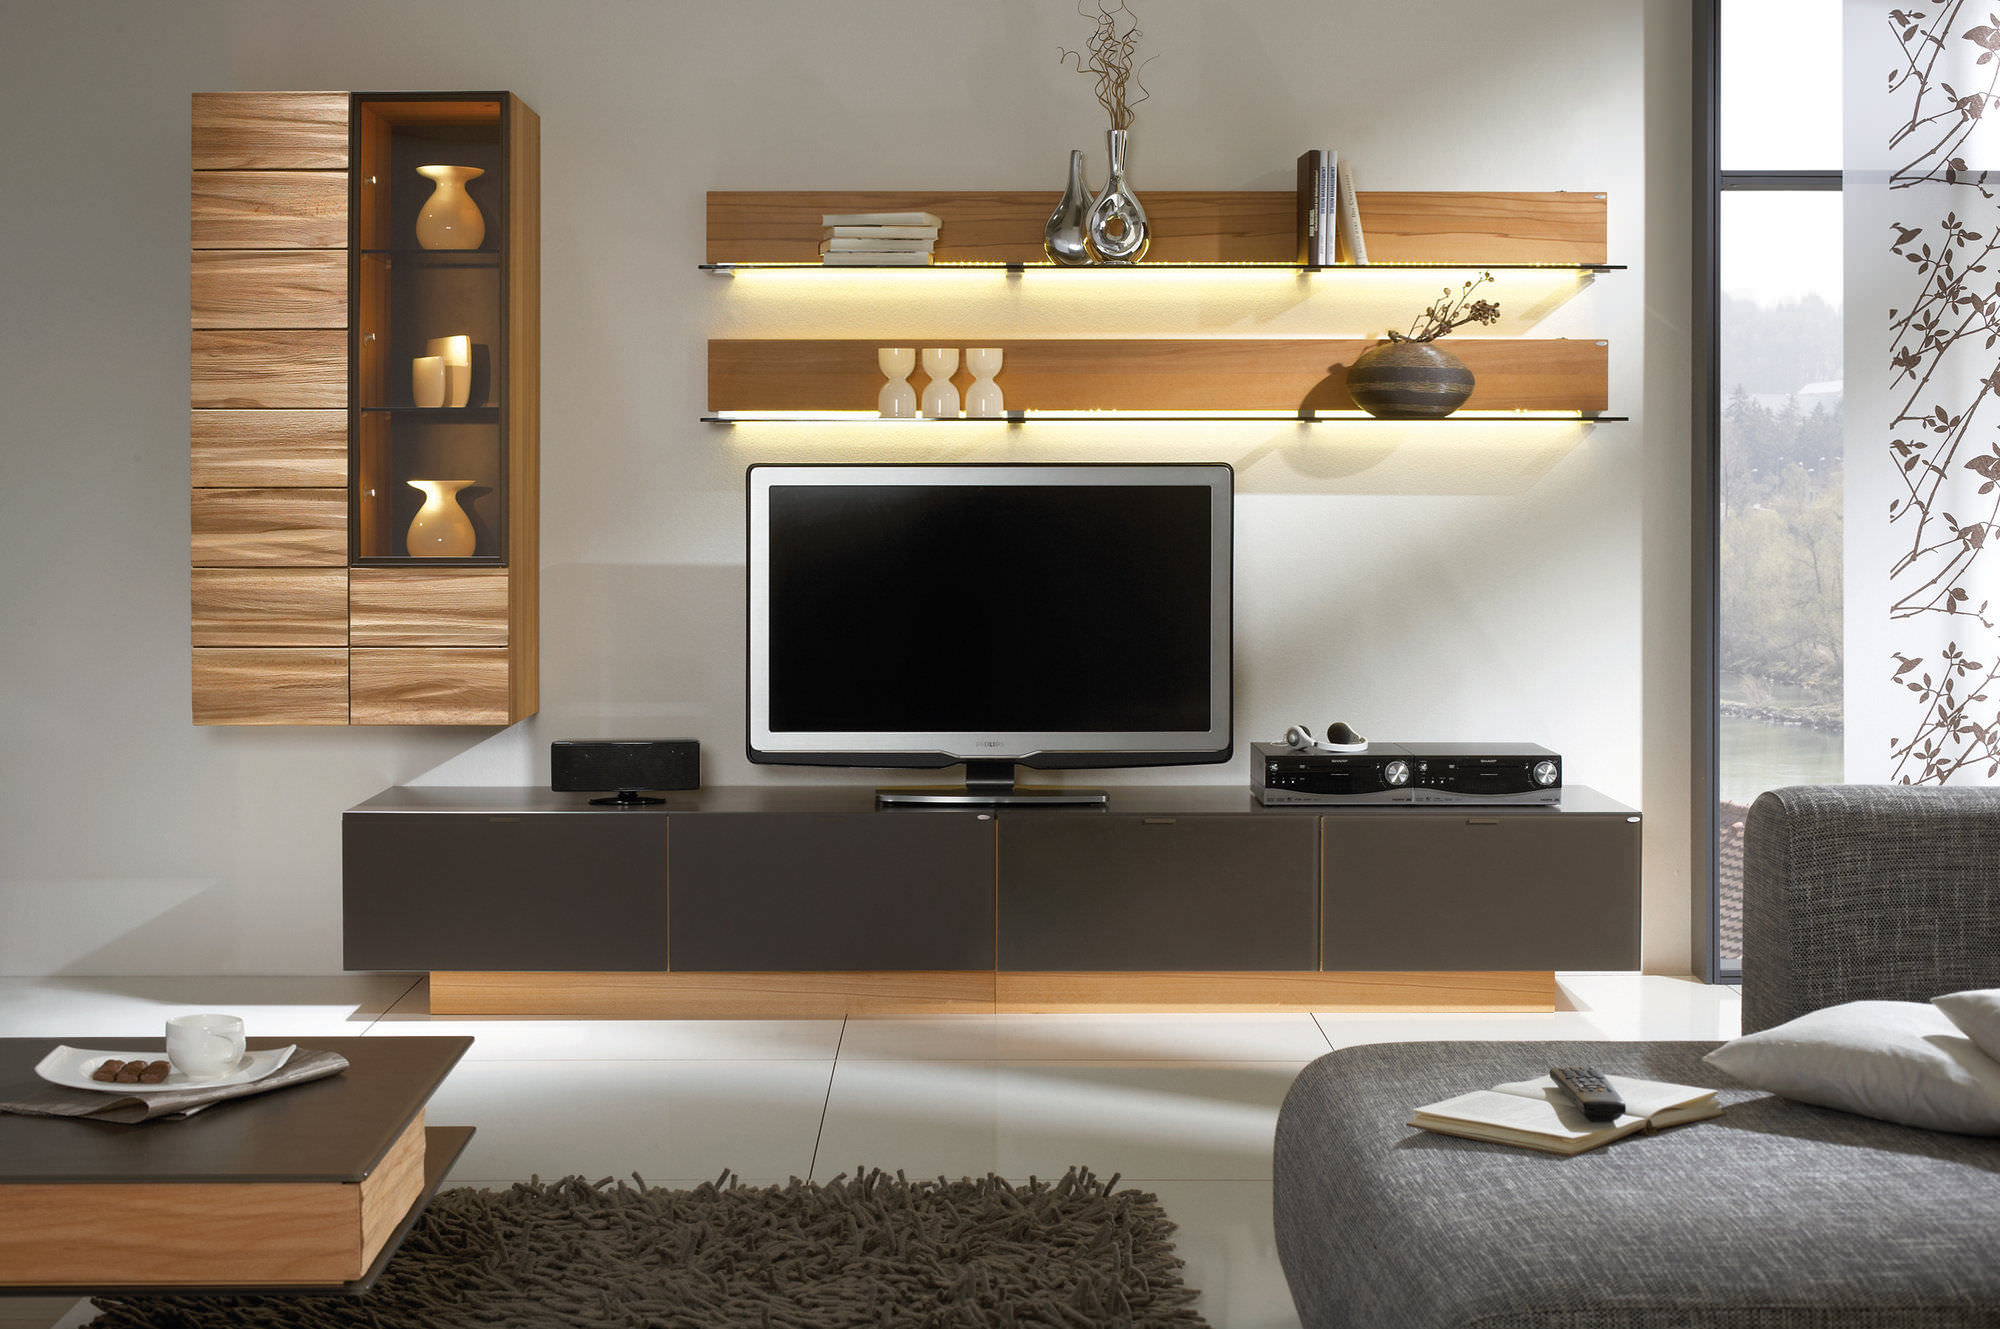 20 Modern Tv Unit Design Ideas For Bedroom & Living Room. Studio Living Room Furniture. Living Room Design Tools. Interior Design Open Kitchen Living Room. Living Room Ideas With White Leather Couches. Long Living Room Layout. Teal Living Room. Brown Sofa Living Room. Microfiber Living Room Chairs